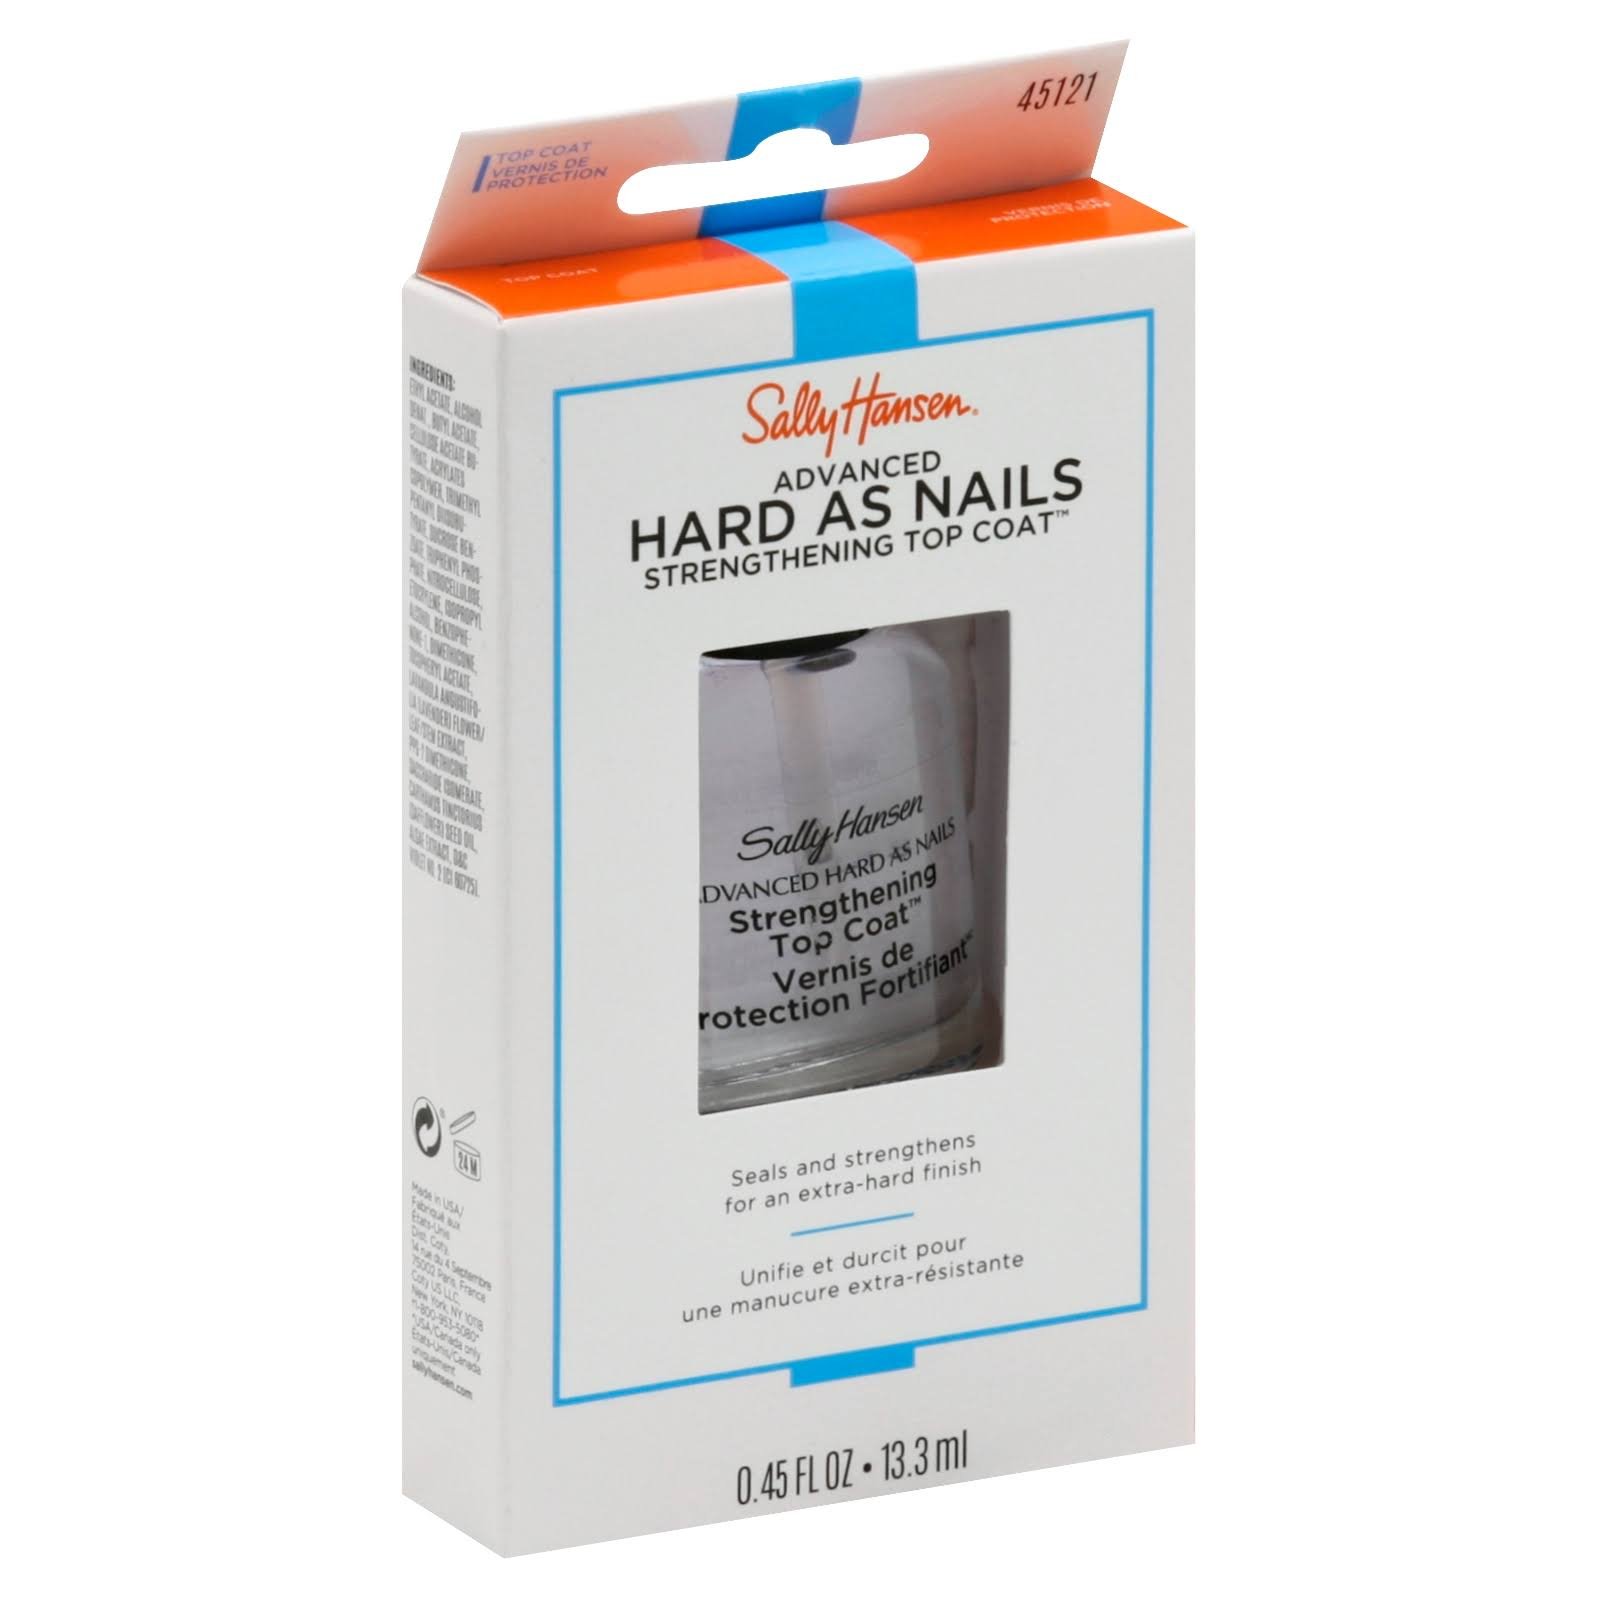 Sally Hansen Hard as Nails Strengthening Top Coat